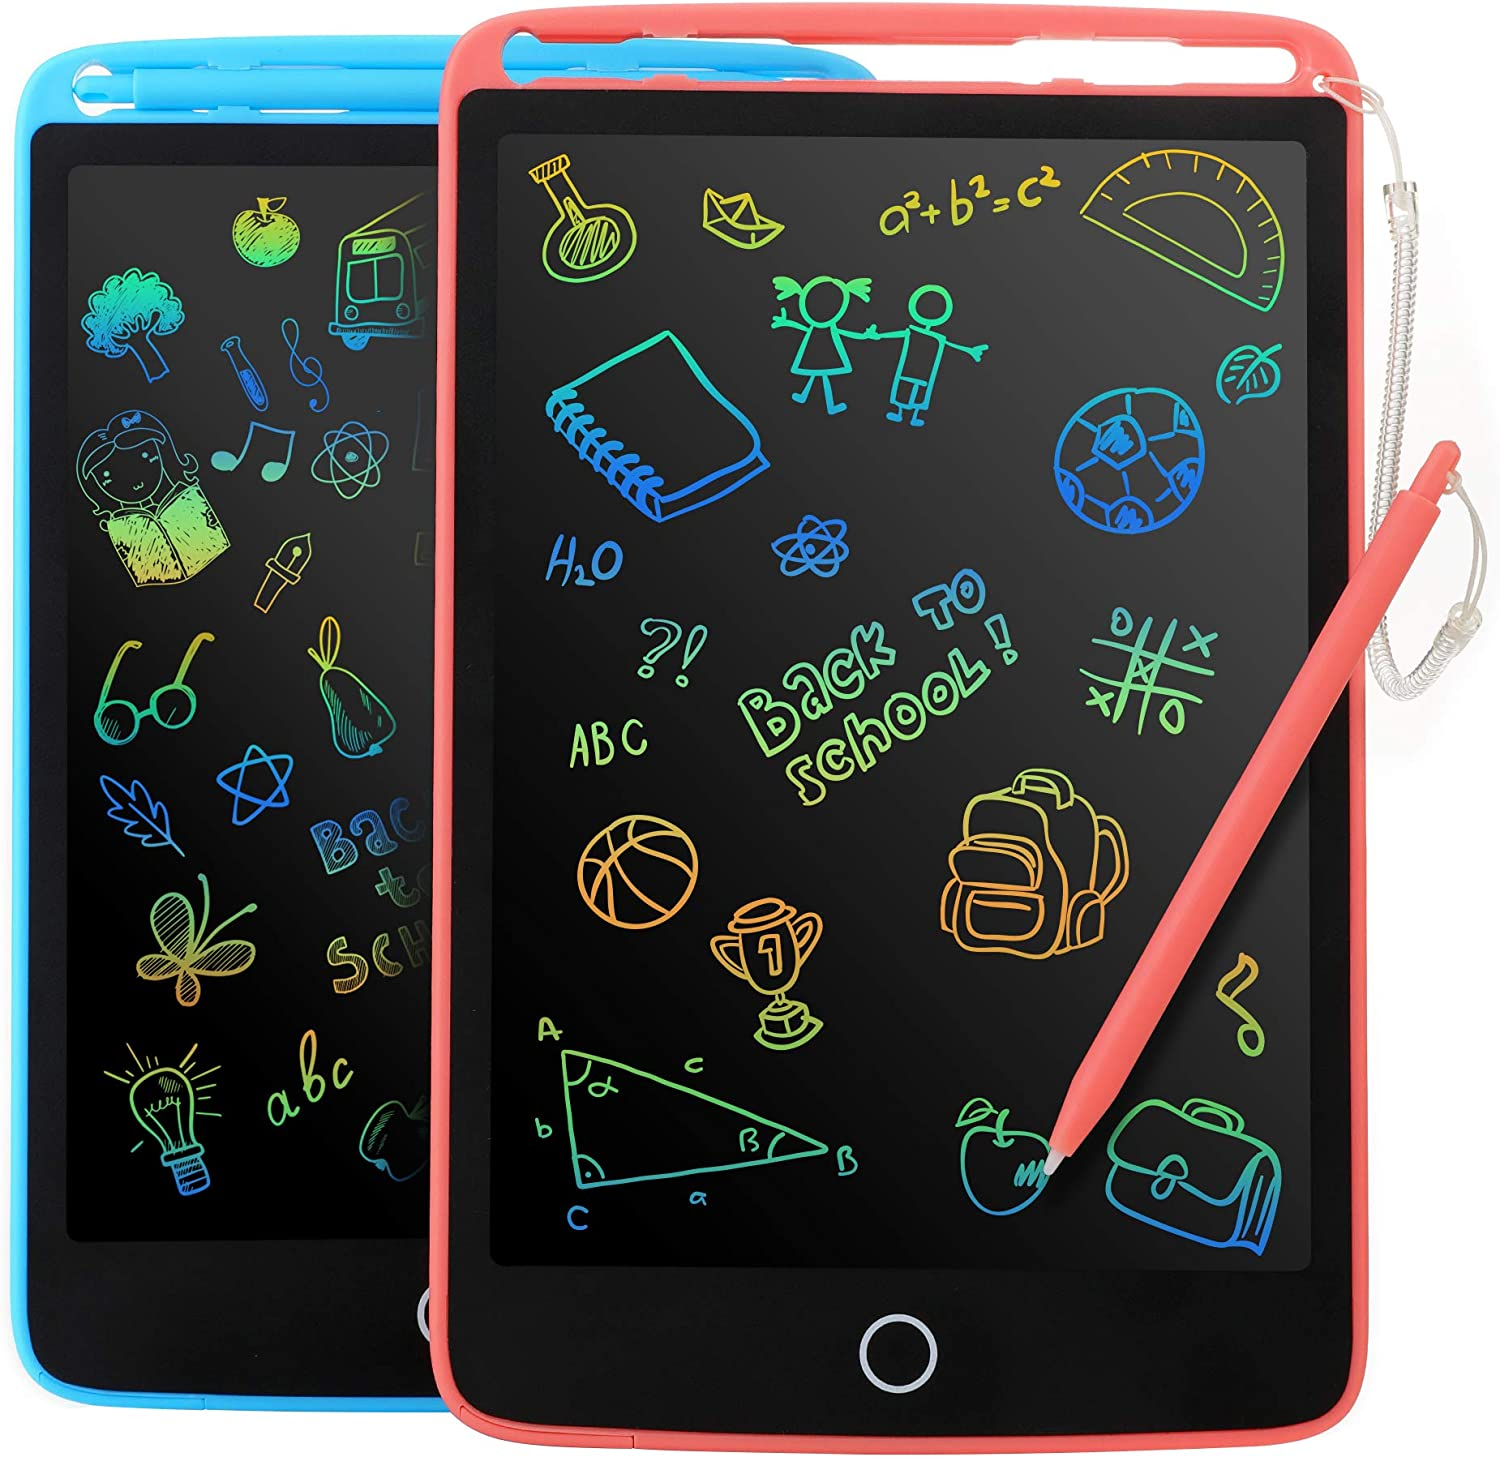 2 Pack LCD Writing Tablet for Kids - Colorful Screen Drawing Board 8.5inch Doodle Scribbler Pad Learning Educational Toy - Gift for 3-6 Years Old Boy Girl (Blue/Pink)